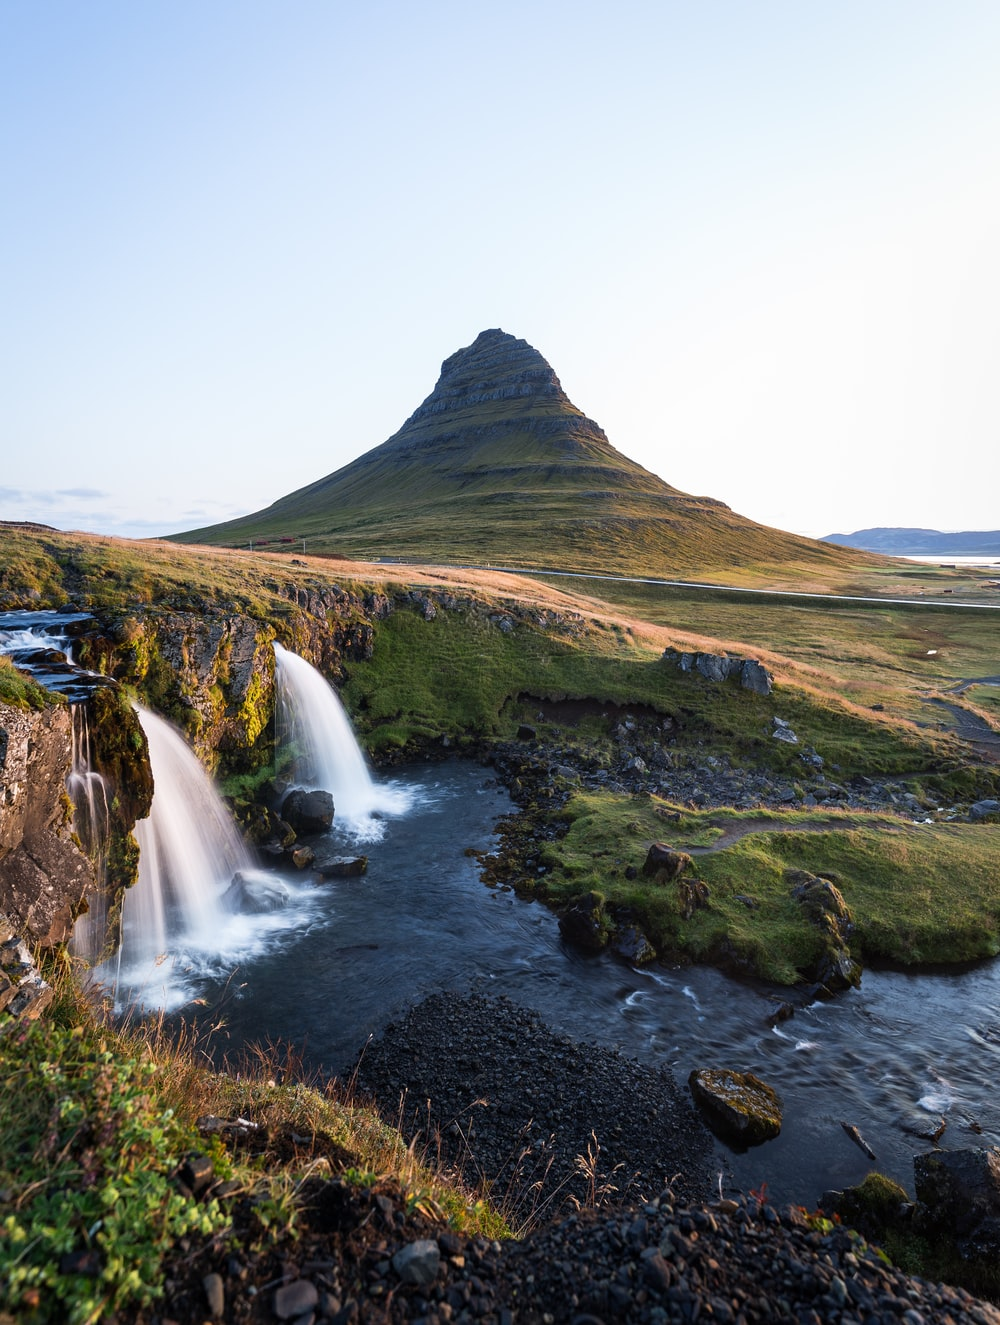 landscape photography of waterfalls viewing mountain and green field during daytime